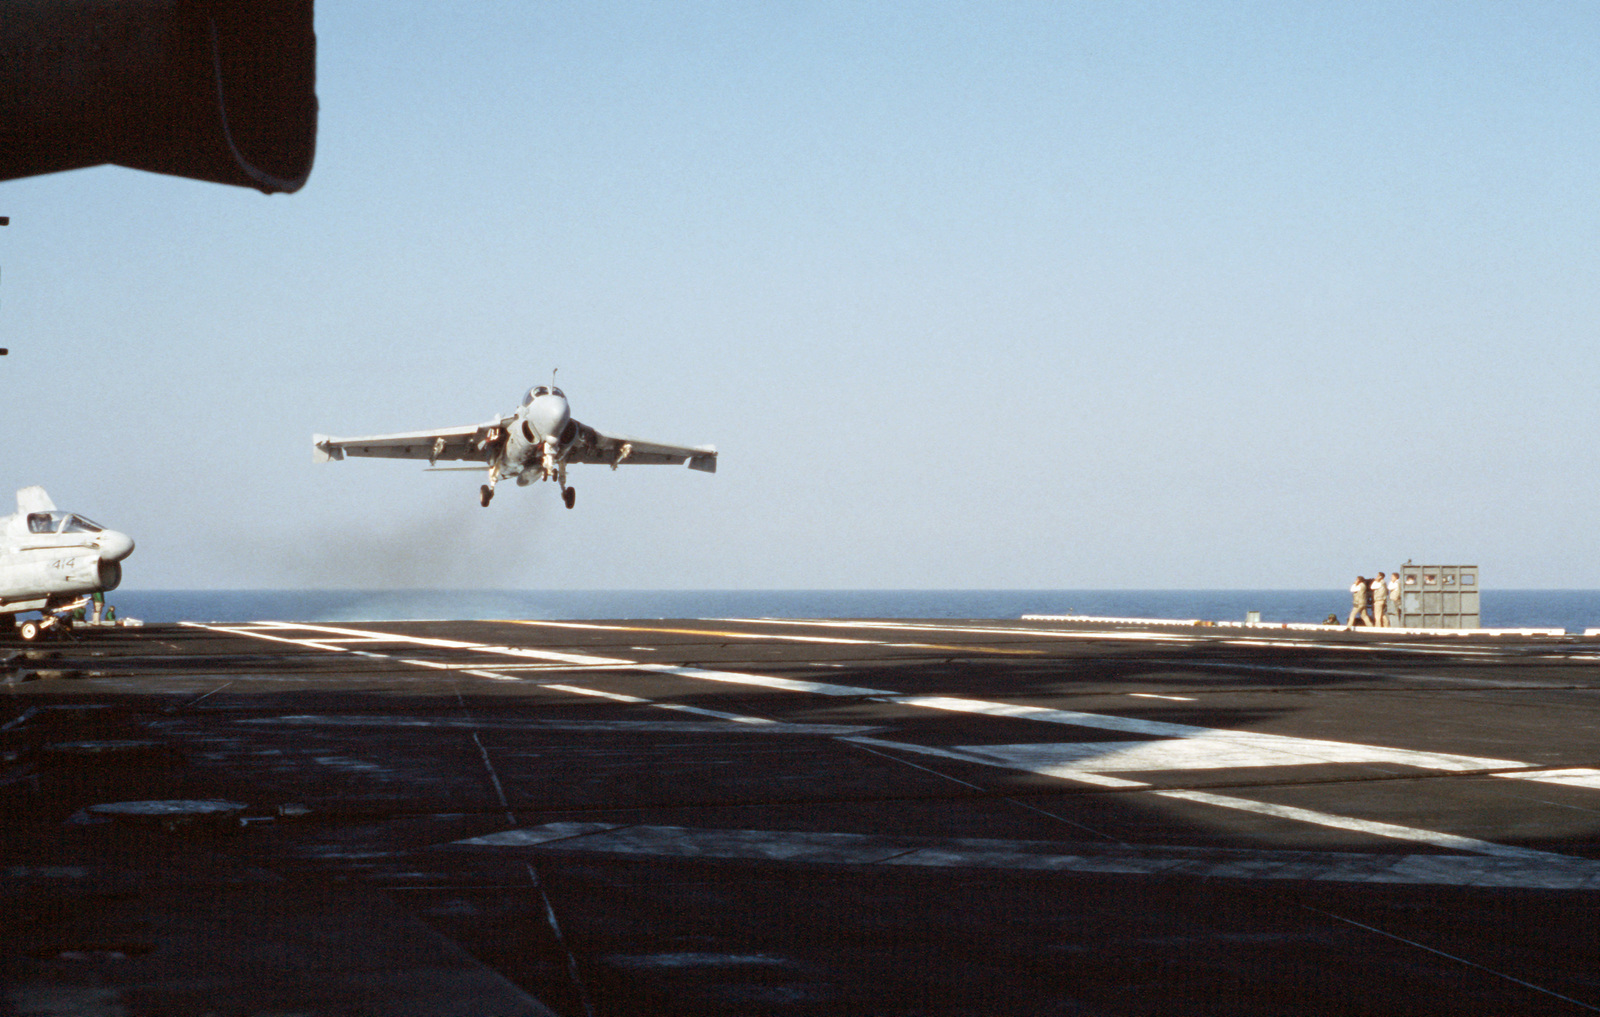 A Strike-Fighter Squadron 111 (VFA-111) A-6E Intruder aircraft approaches for a landing aboard the flight deck of the nuclear-powered aircraft carrier USS DWIGHT D. EISENHOWER (CVN 69).  Note:  First view in a series of six